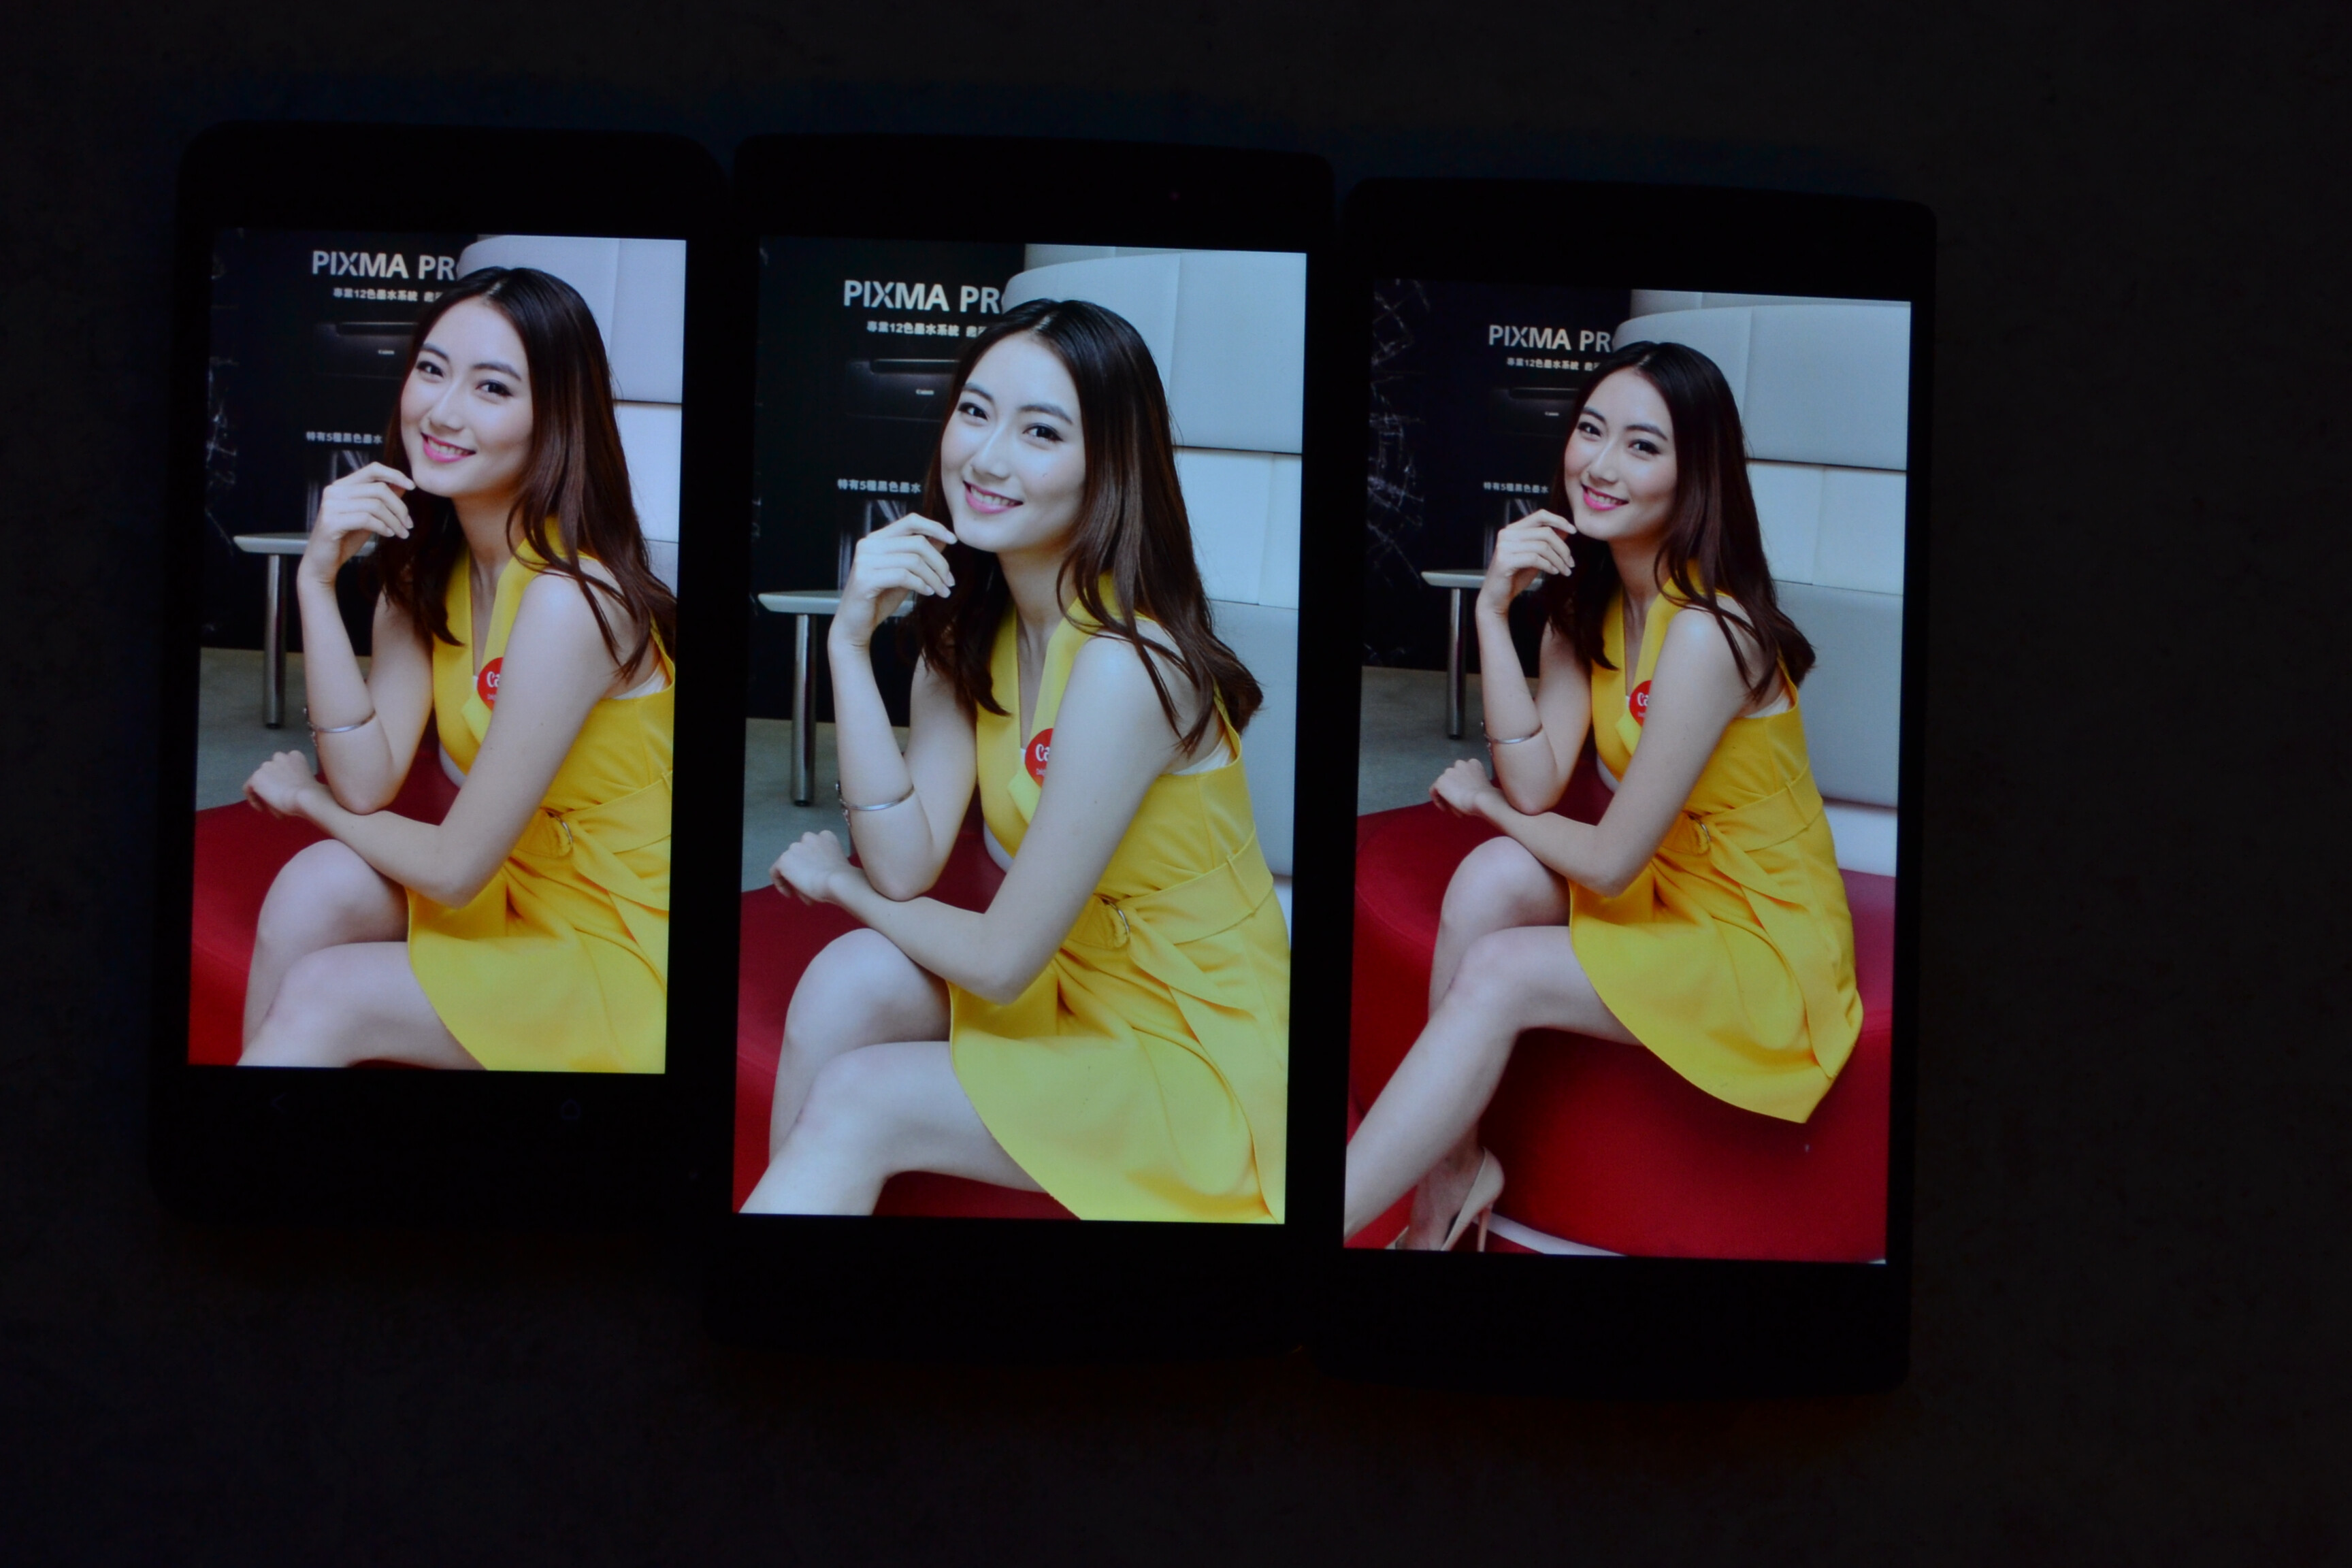 Left to right - HTC One, Oppo Find 7 (middle), Find 7a